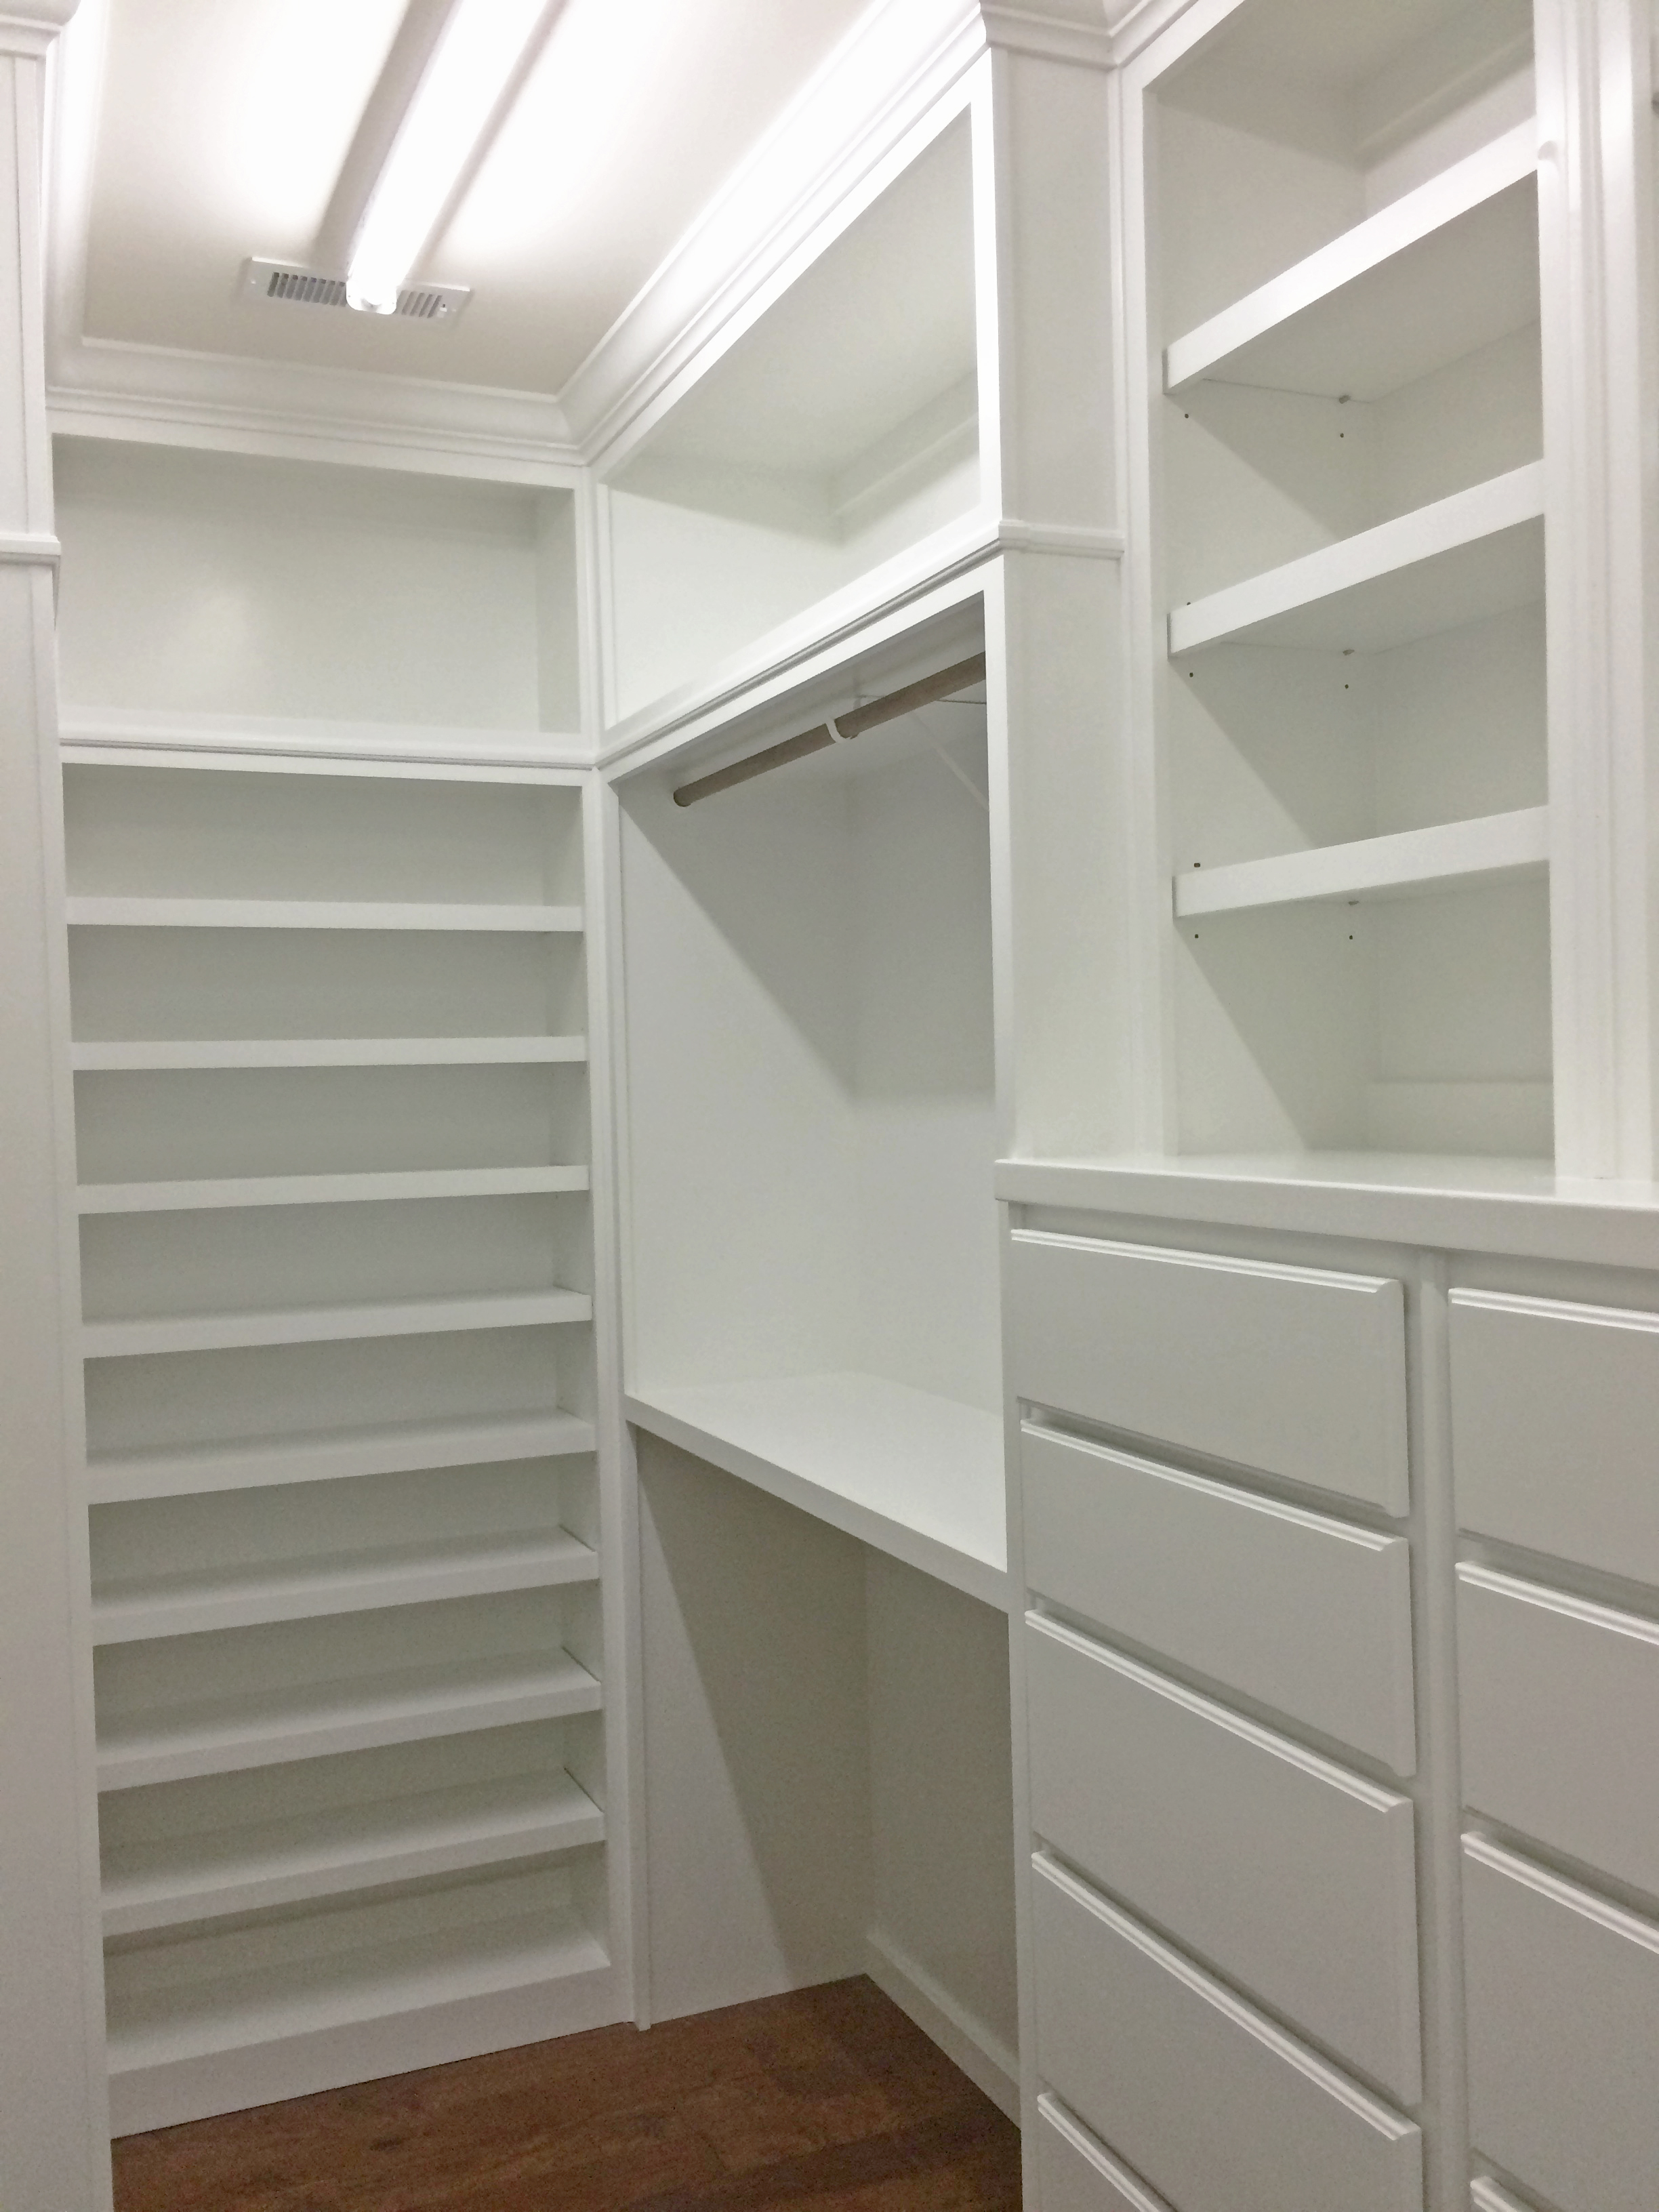 Master Closet with Long Hang & Double Hang with Shelf Above, Adjustable Shelves, Open Cubbies, Slab Drawers, and Crown